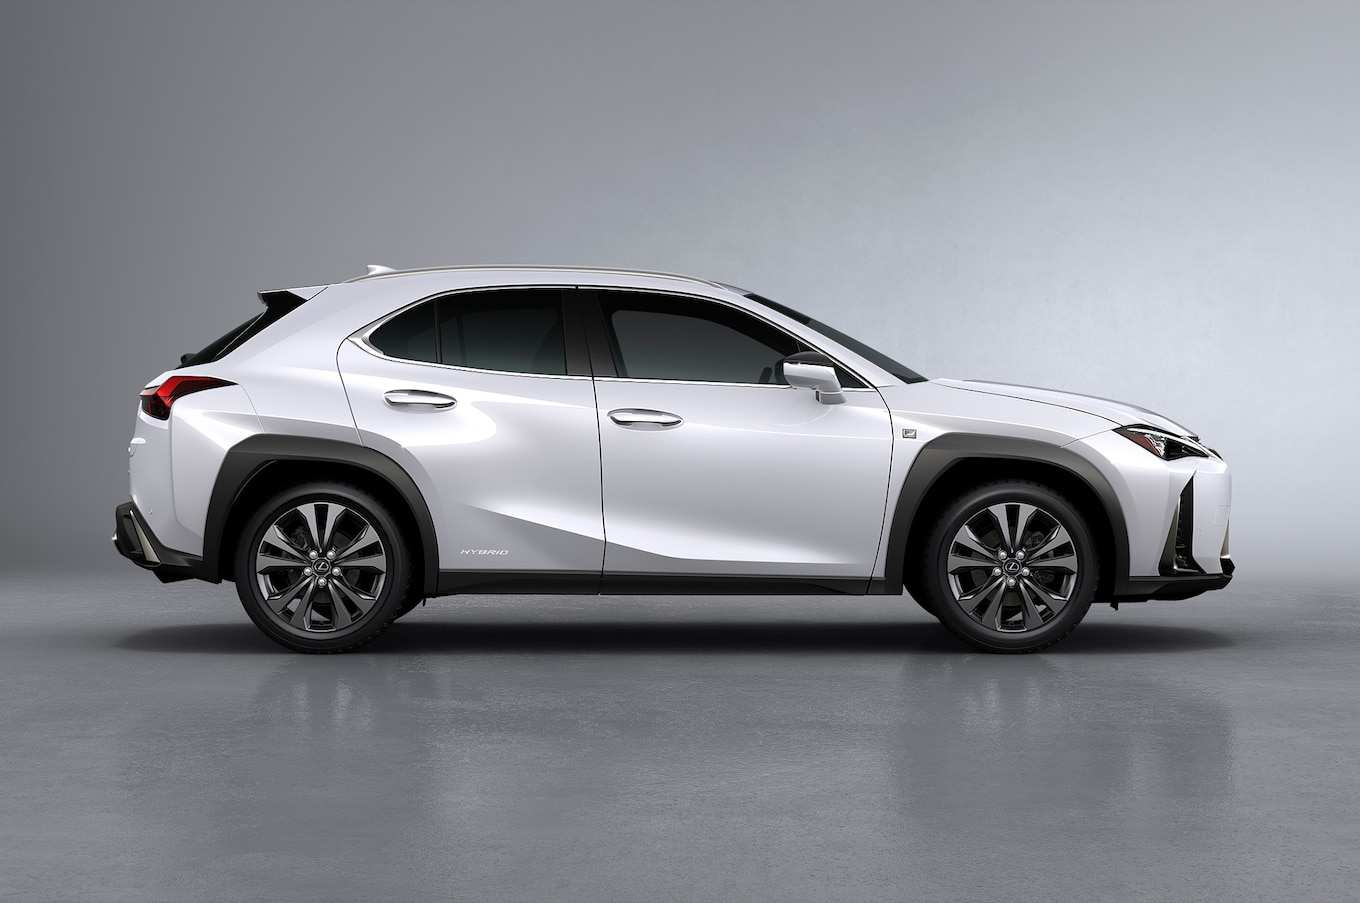 49 New 2019 Lexus Ux Release Date Spy Shoot with 2019 Lexus Ux Release Date